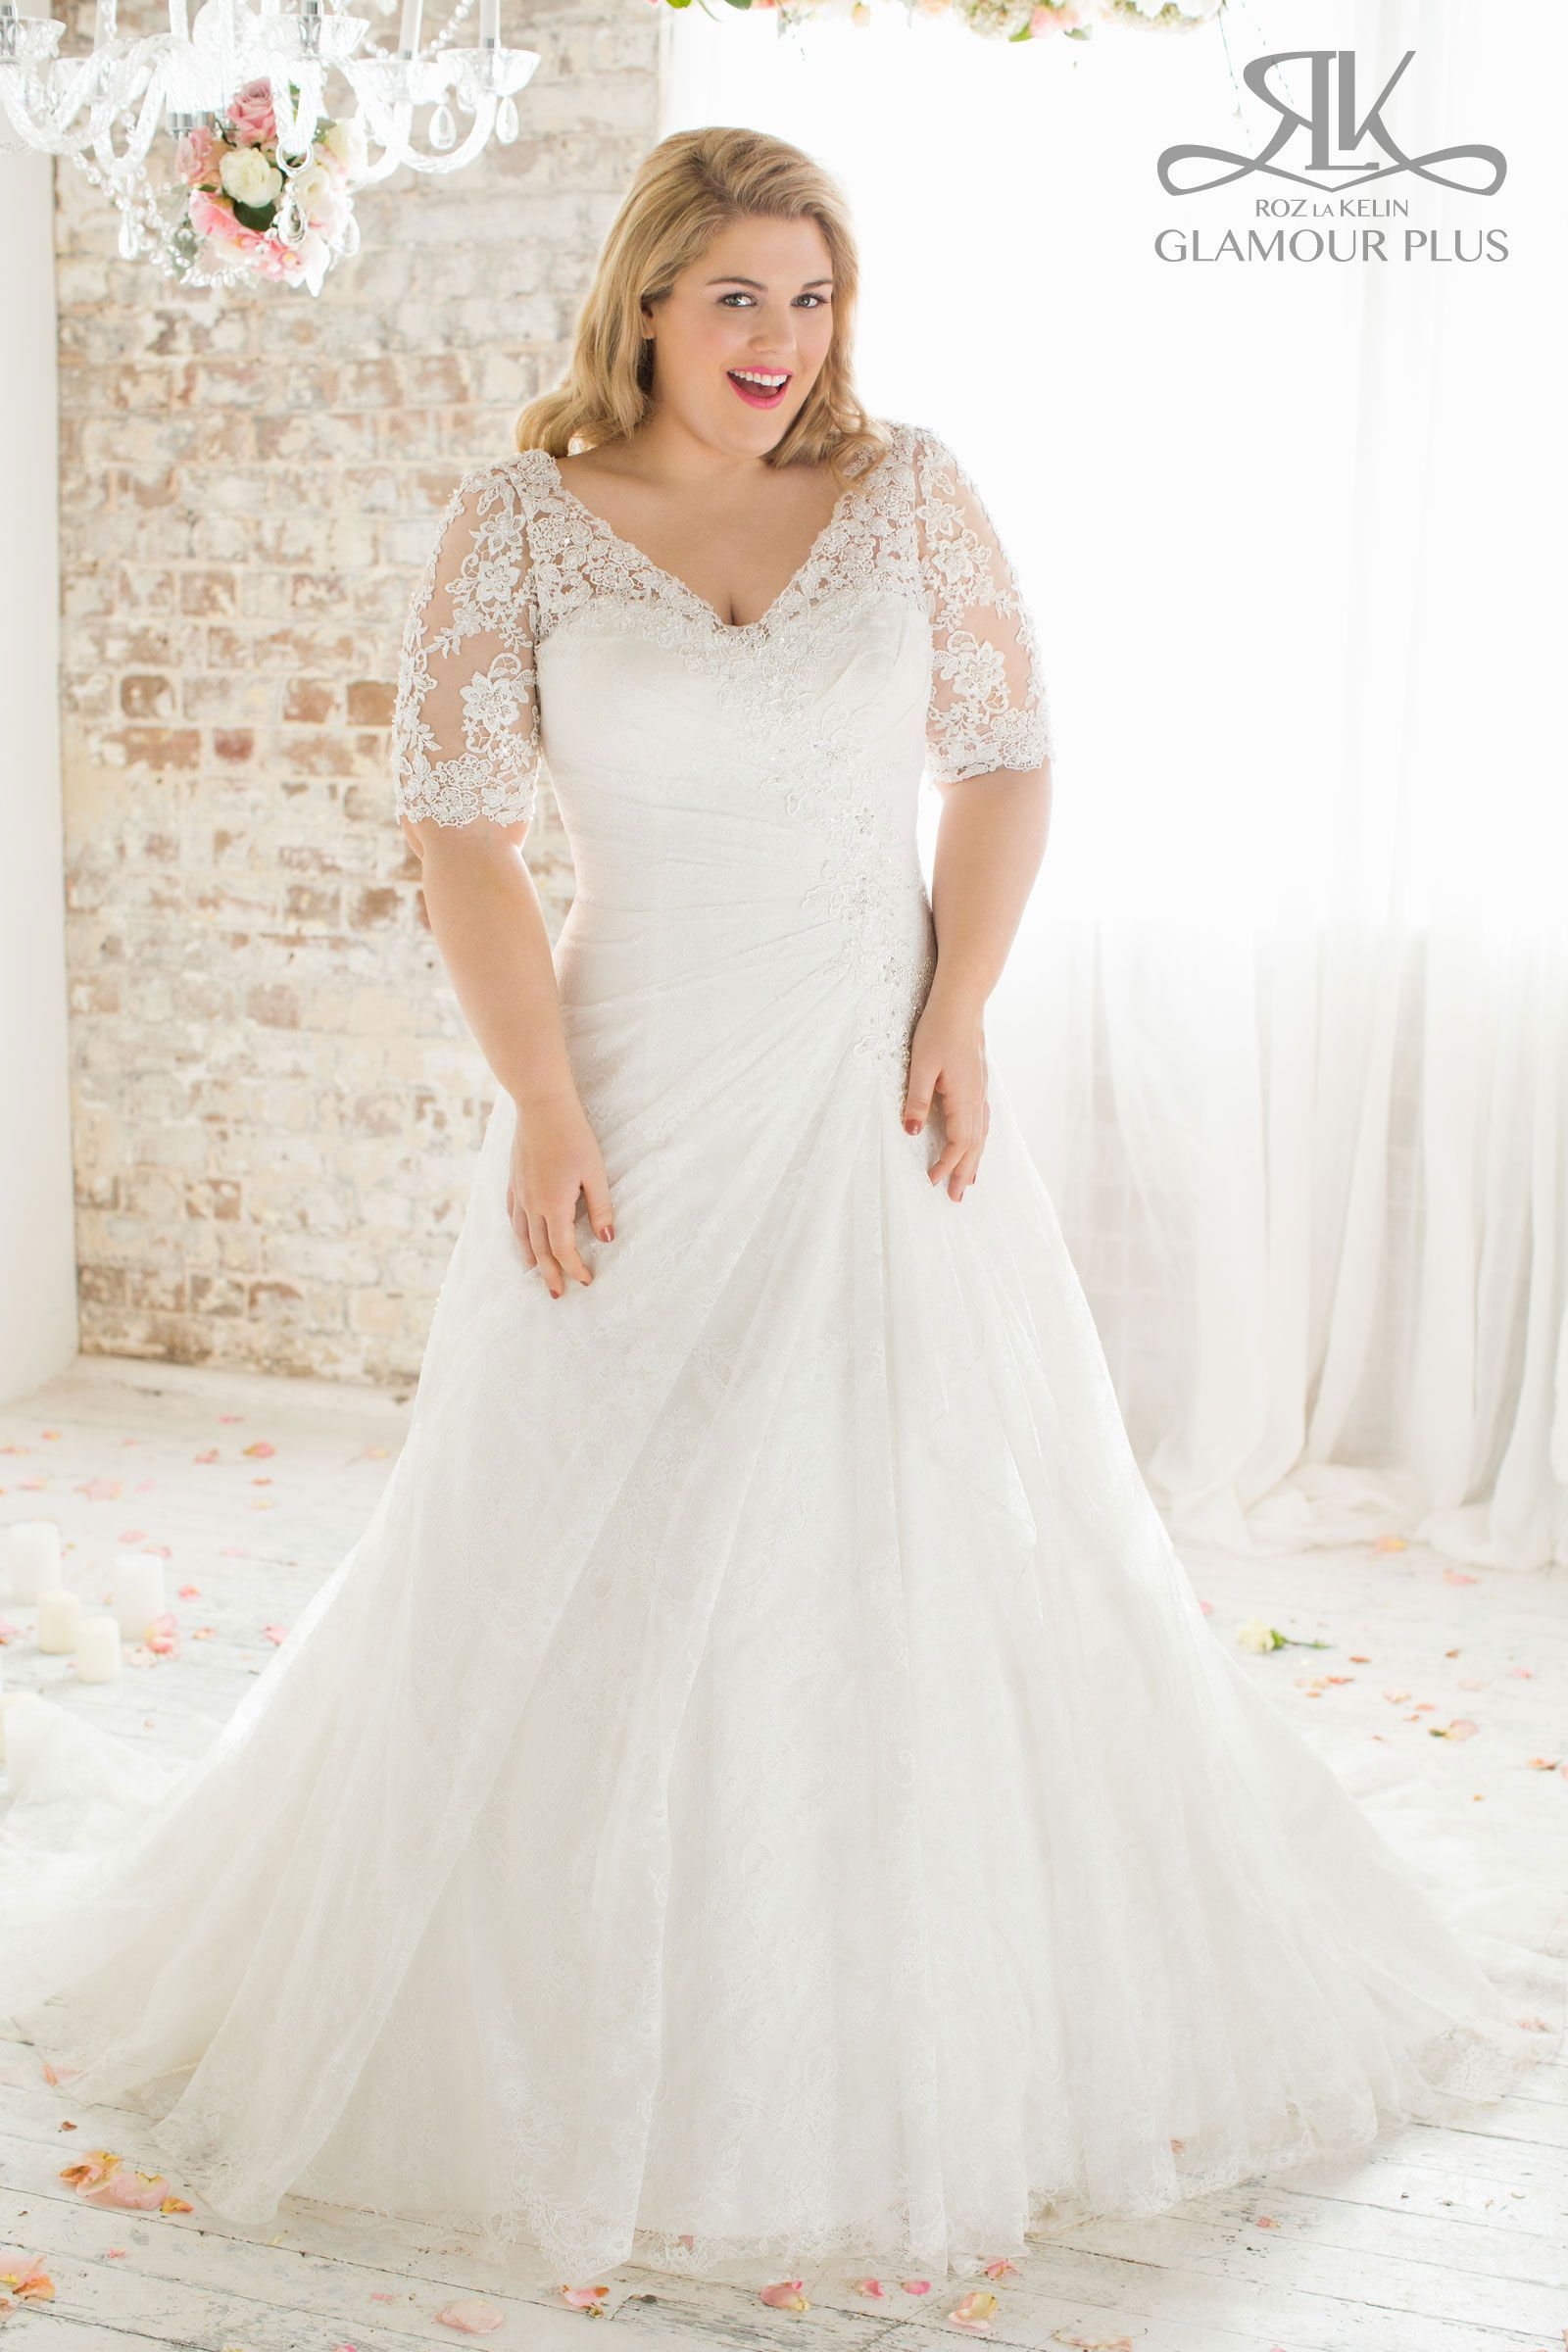 8 Great Tips For Picking The Perfect Wedding Dress Plus Size Wedding Dresses With Sleeves Plus Wedding Dresses Wedding Dresses Lace [ 2400 x 1600 Pixel ]